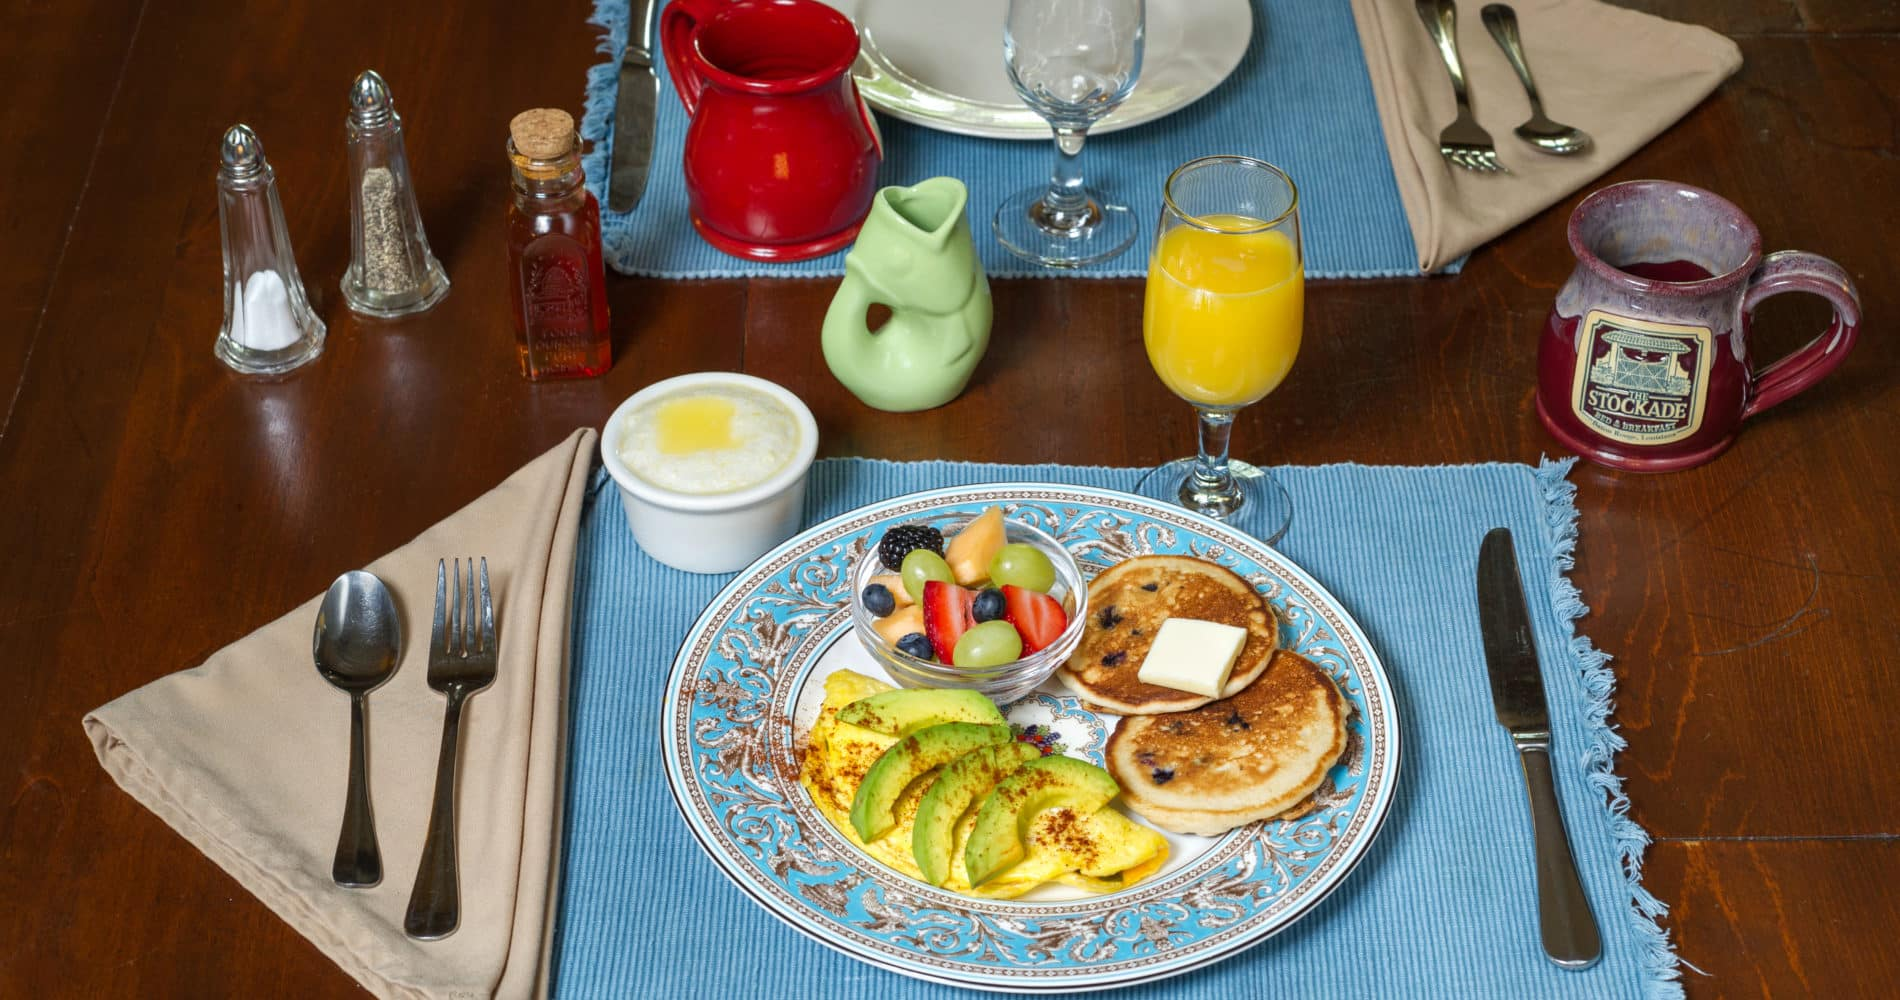 Breakfast of pancakes, avocados, fruit, grits and orange juice